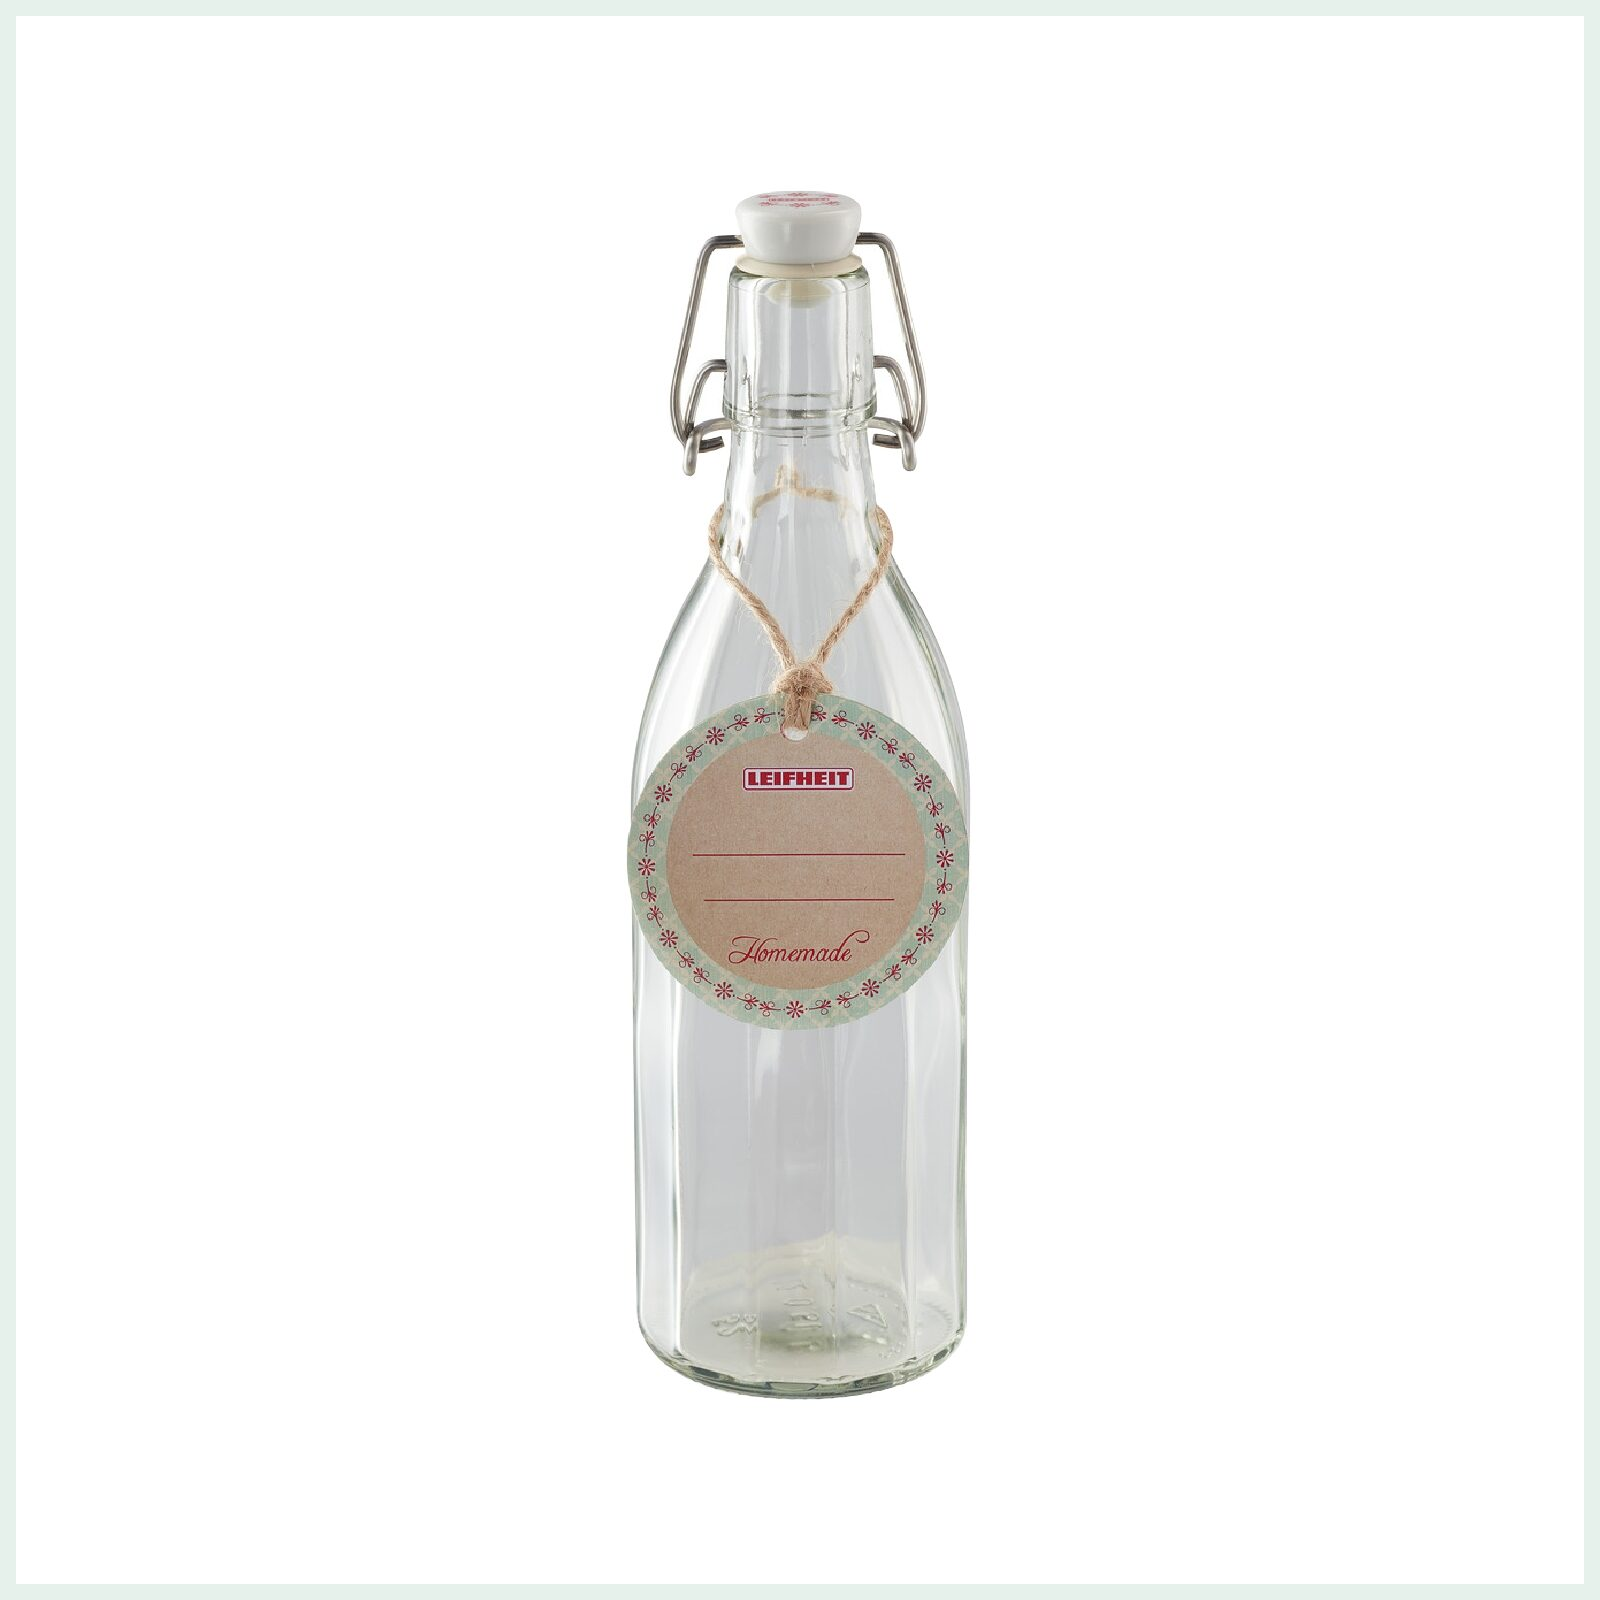 Leifheit preserve bottle with swing top closure and faceted design. Ideal for cordials and kombucha.